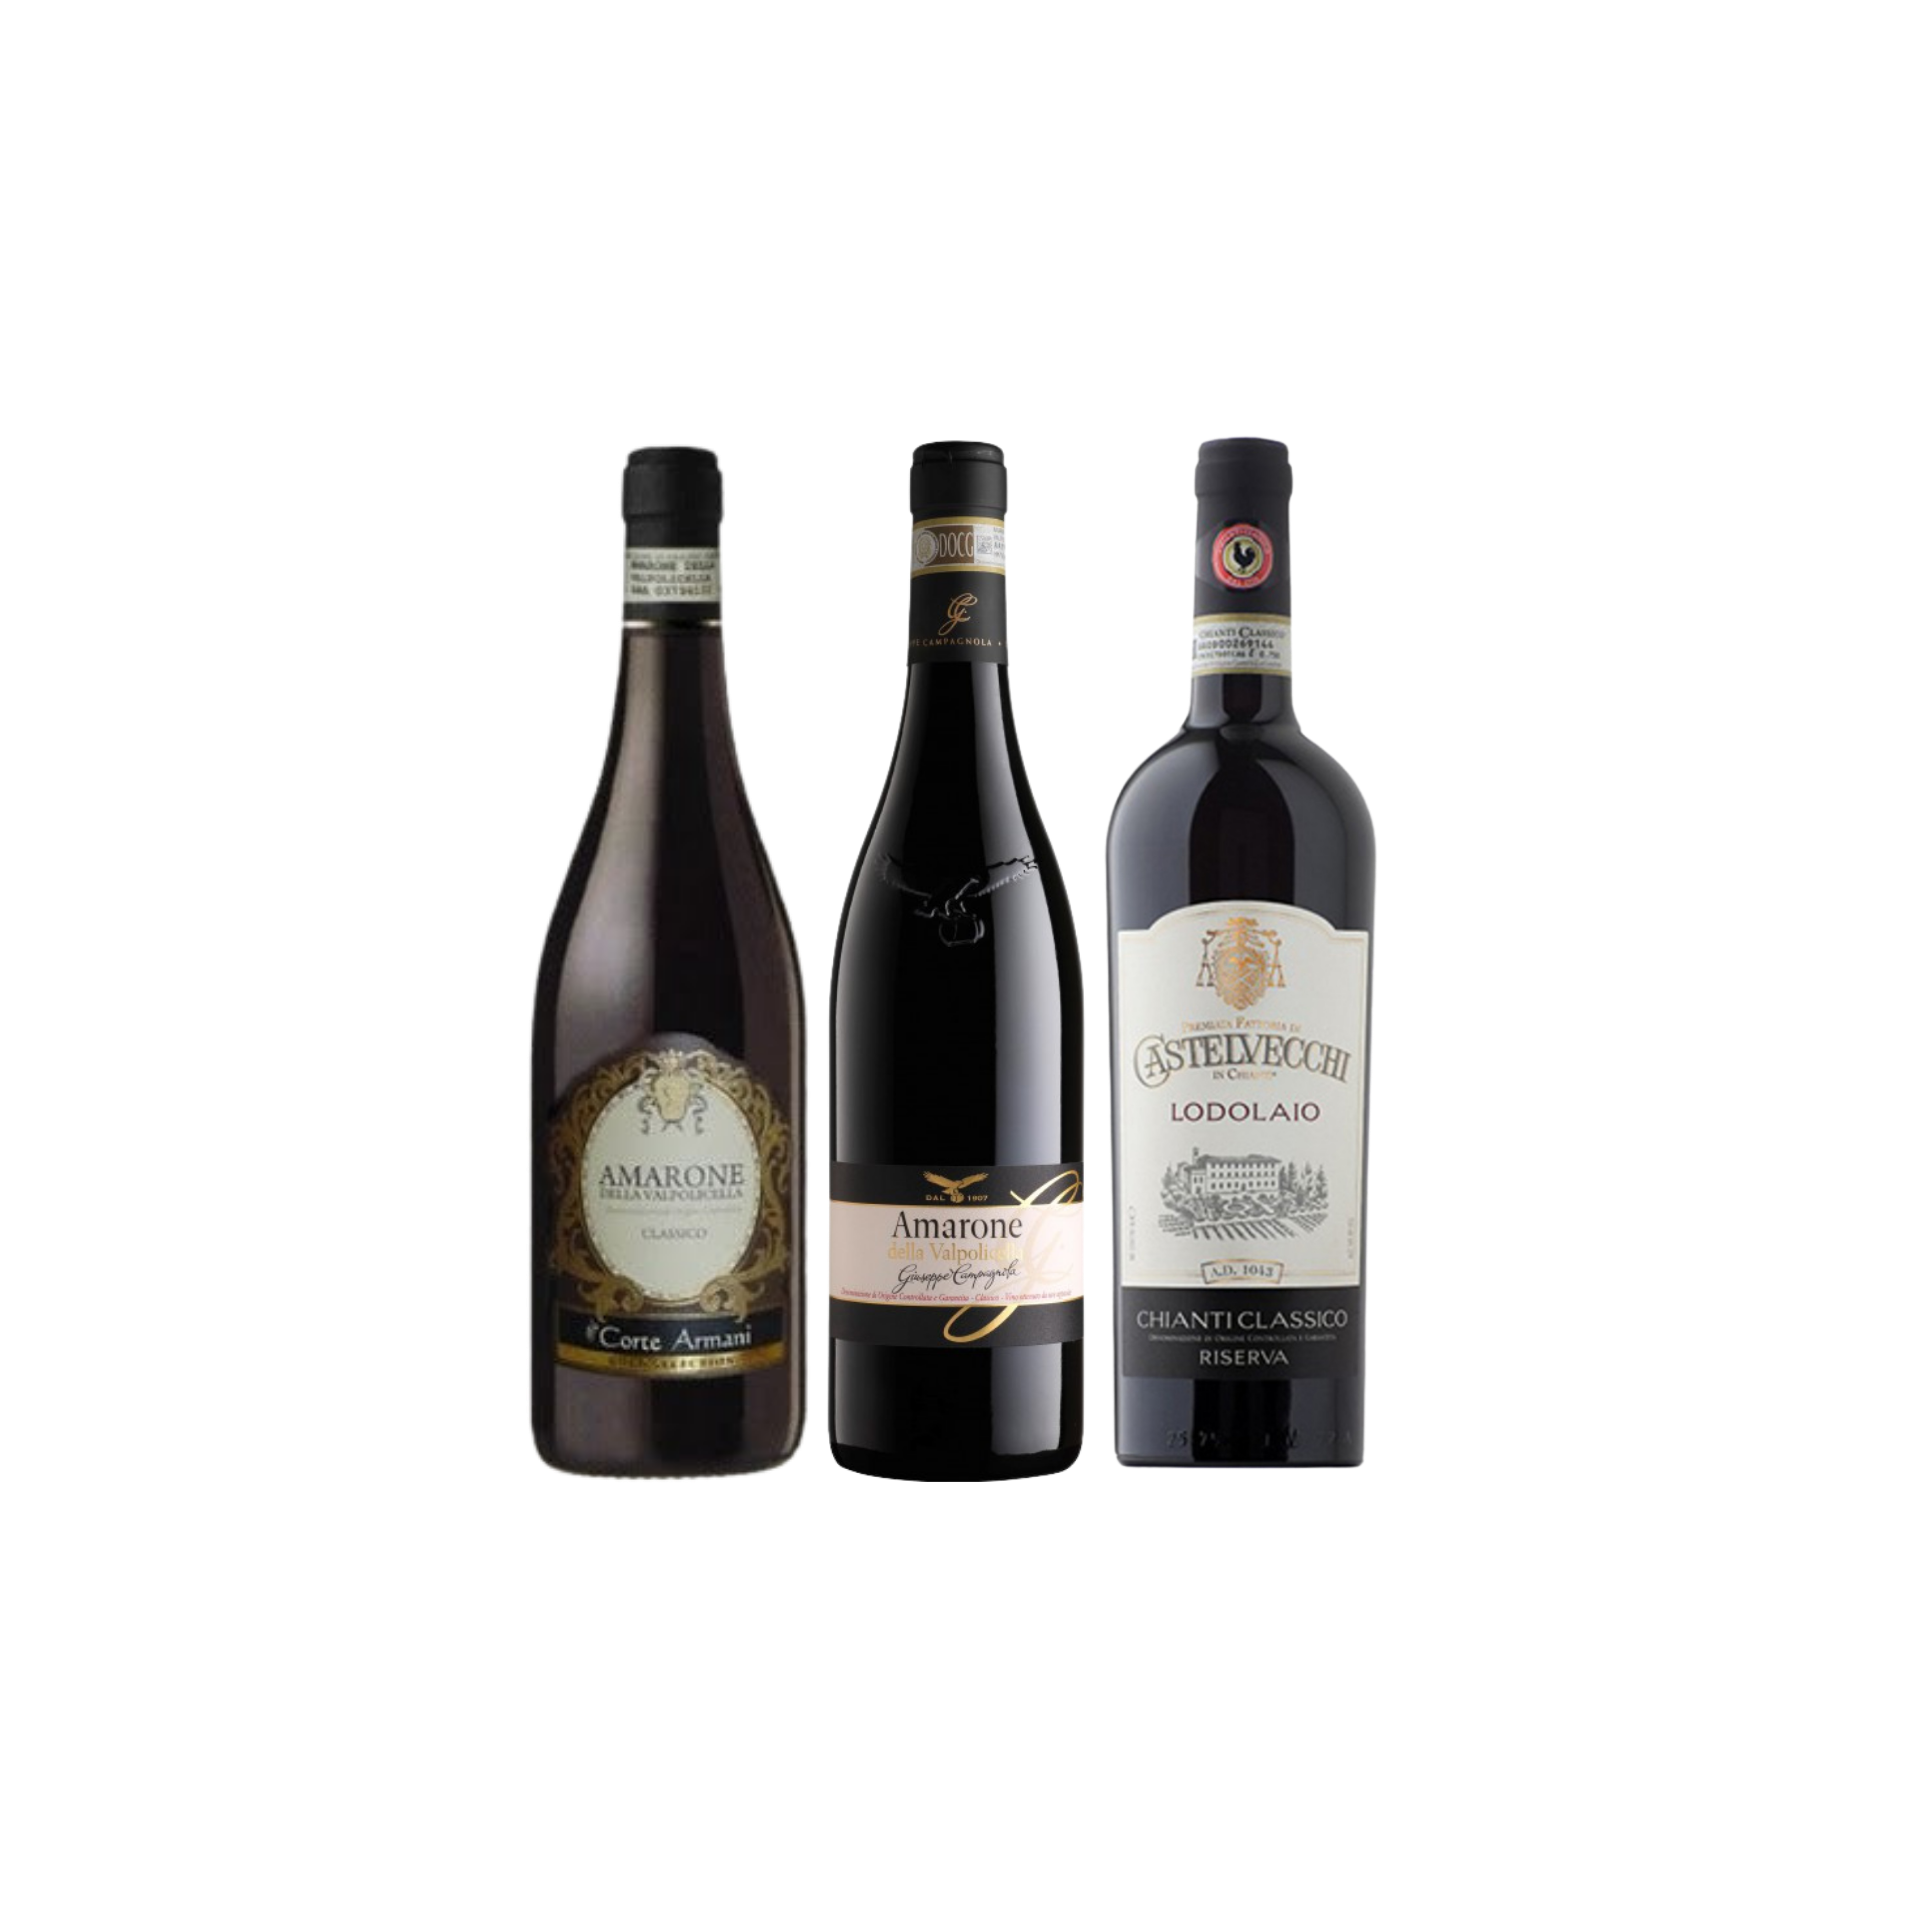 【Bundle A】 Enjoy 2 Bottles of Amarone Plus Chianti Riserva At Only $234 With A Free Set of 6 Schott Zwiesel Wine Glass worth $90